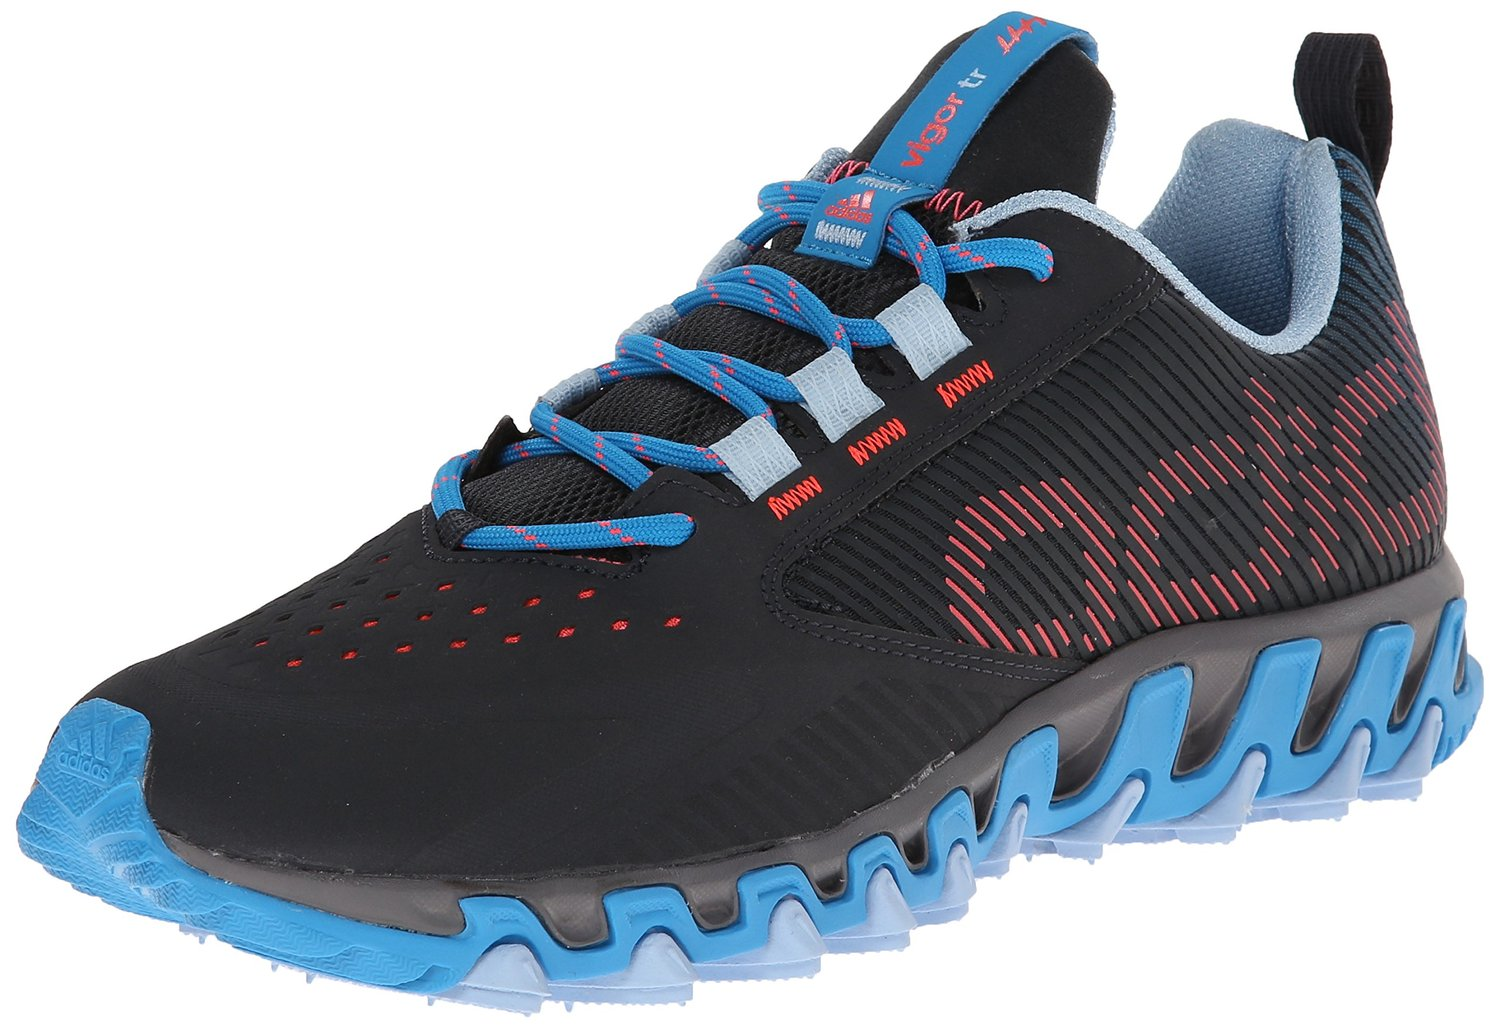 9b92cd33c1c86 adidas Performance Vigor 5 TR W Trail Running Shoe Dark GreyAltitudeSolar  Blue